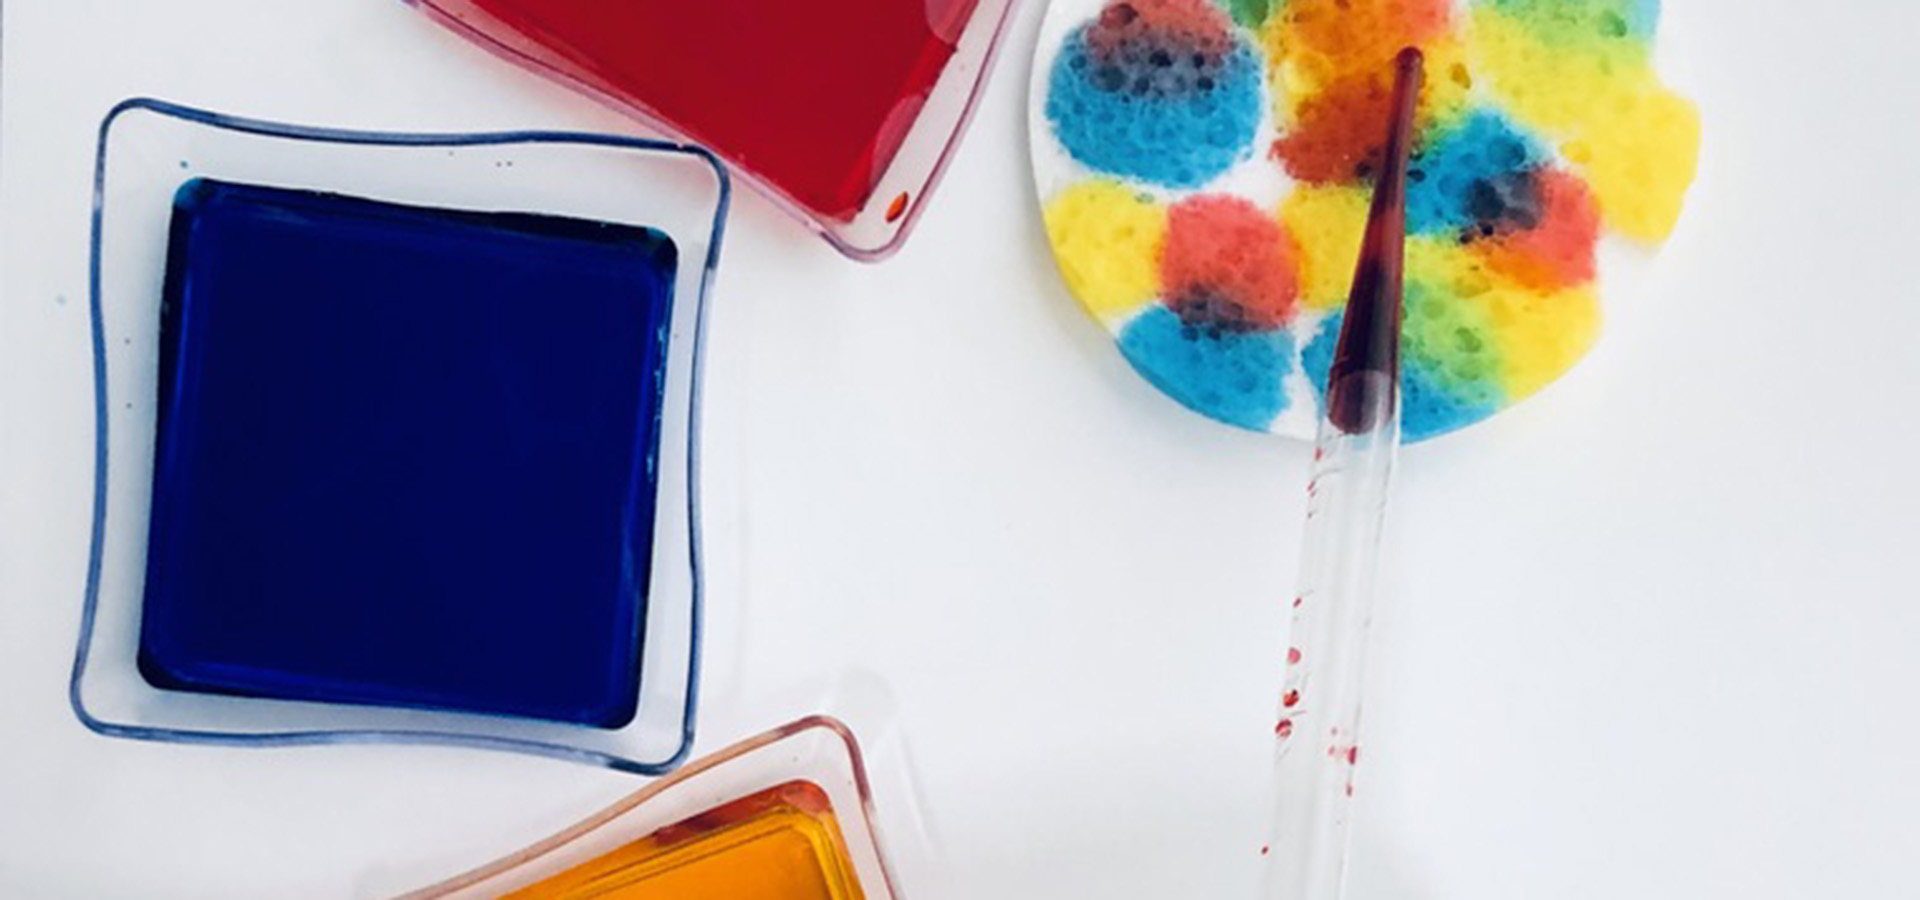 Food coloring and eye dropper and sponge